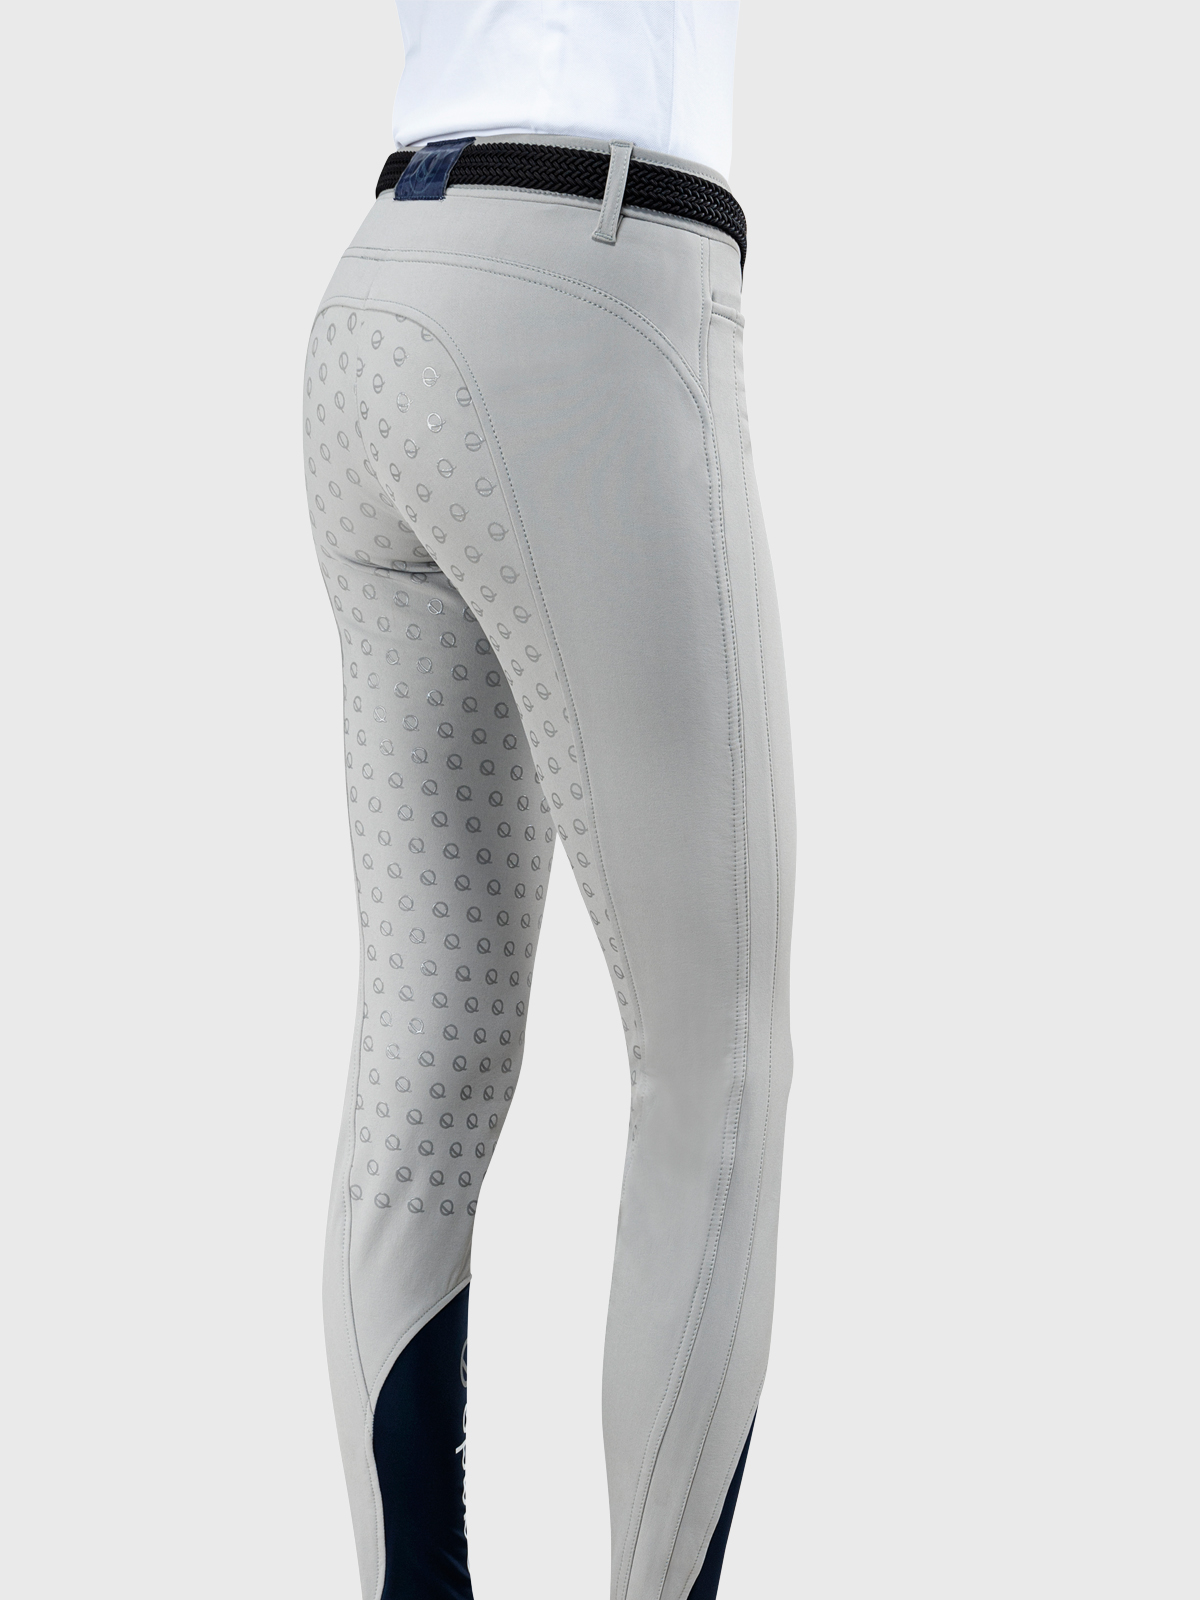 EQODE WOMEN'S BREECHES WITH FULL SEAT GRIP 4